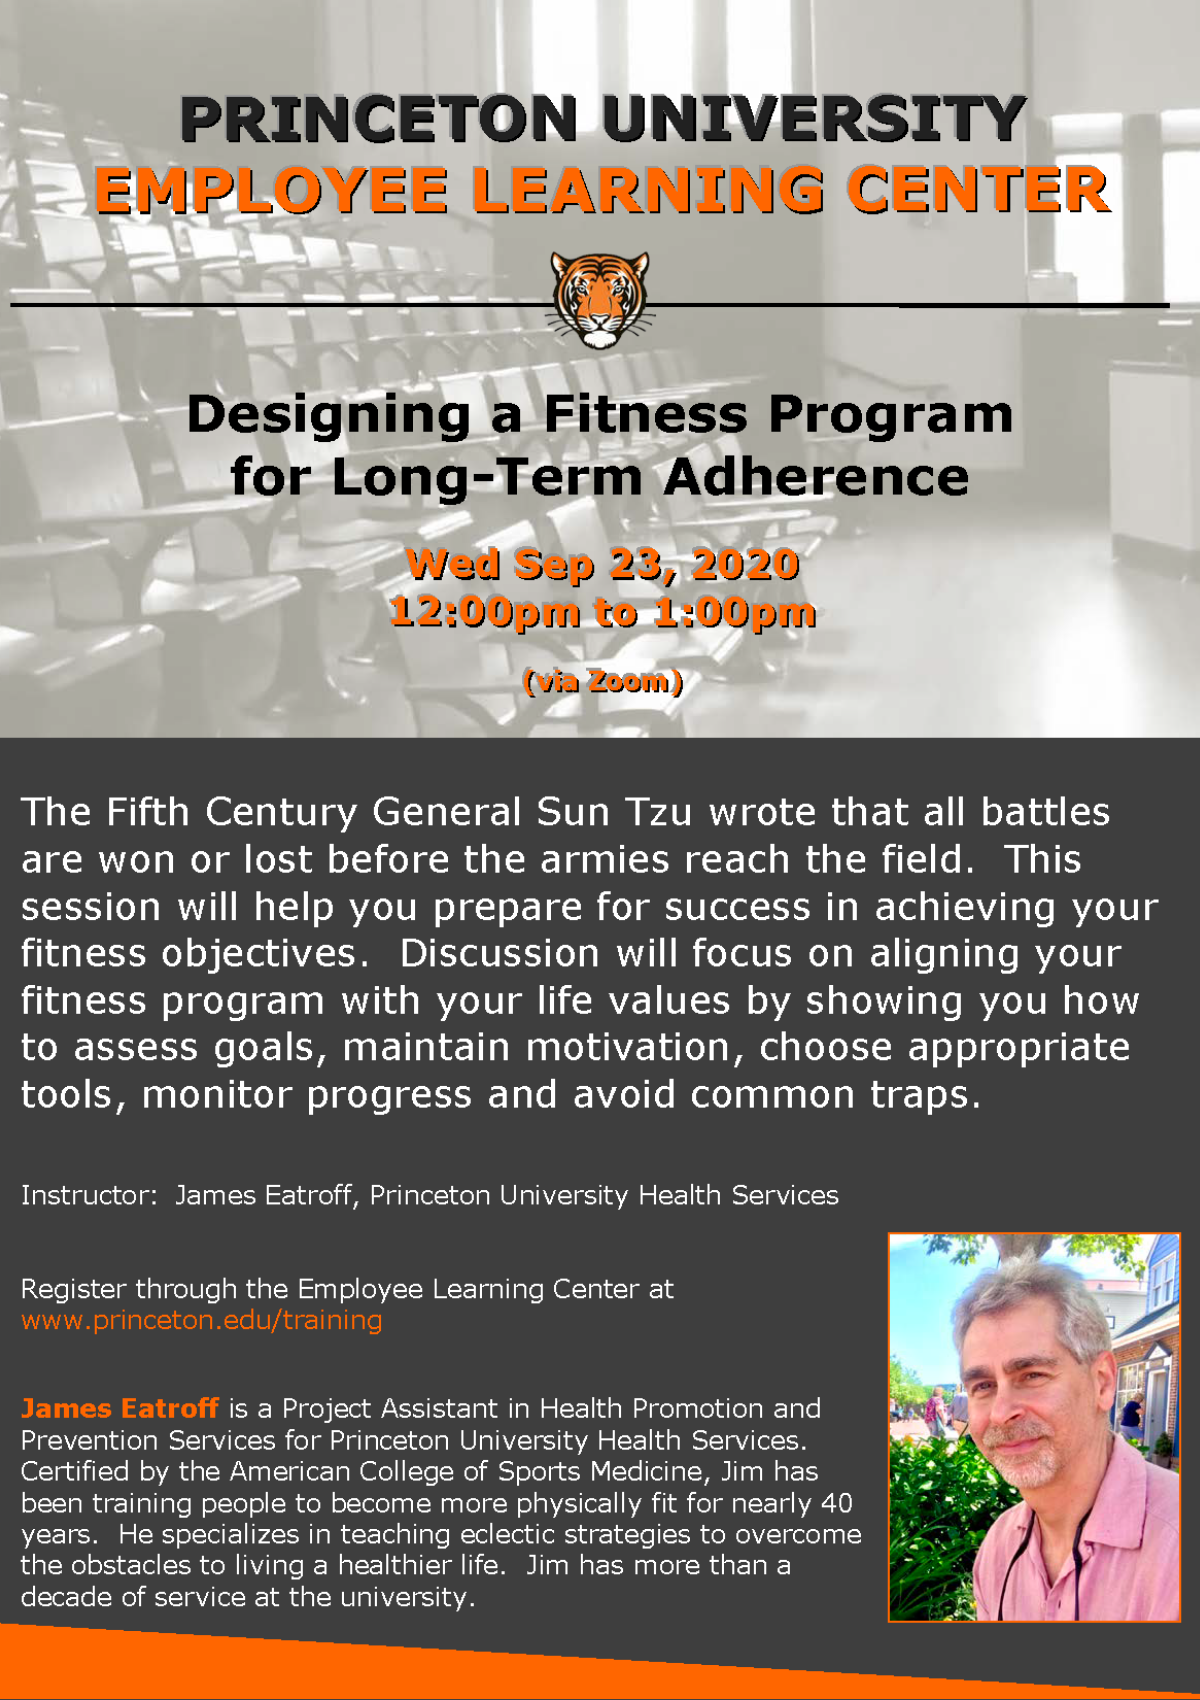 Employee Learning Center: Designing a Fitness Program for Long Term Adherence. Wednesday, Sept. 23, 2020 12pm-1pm via Zoom